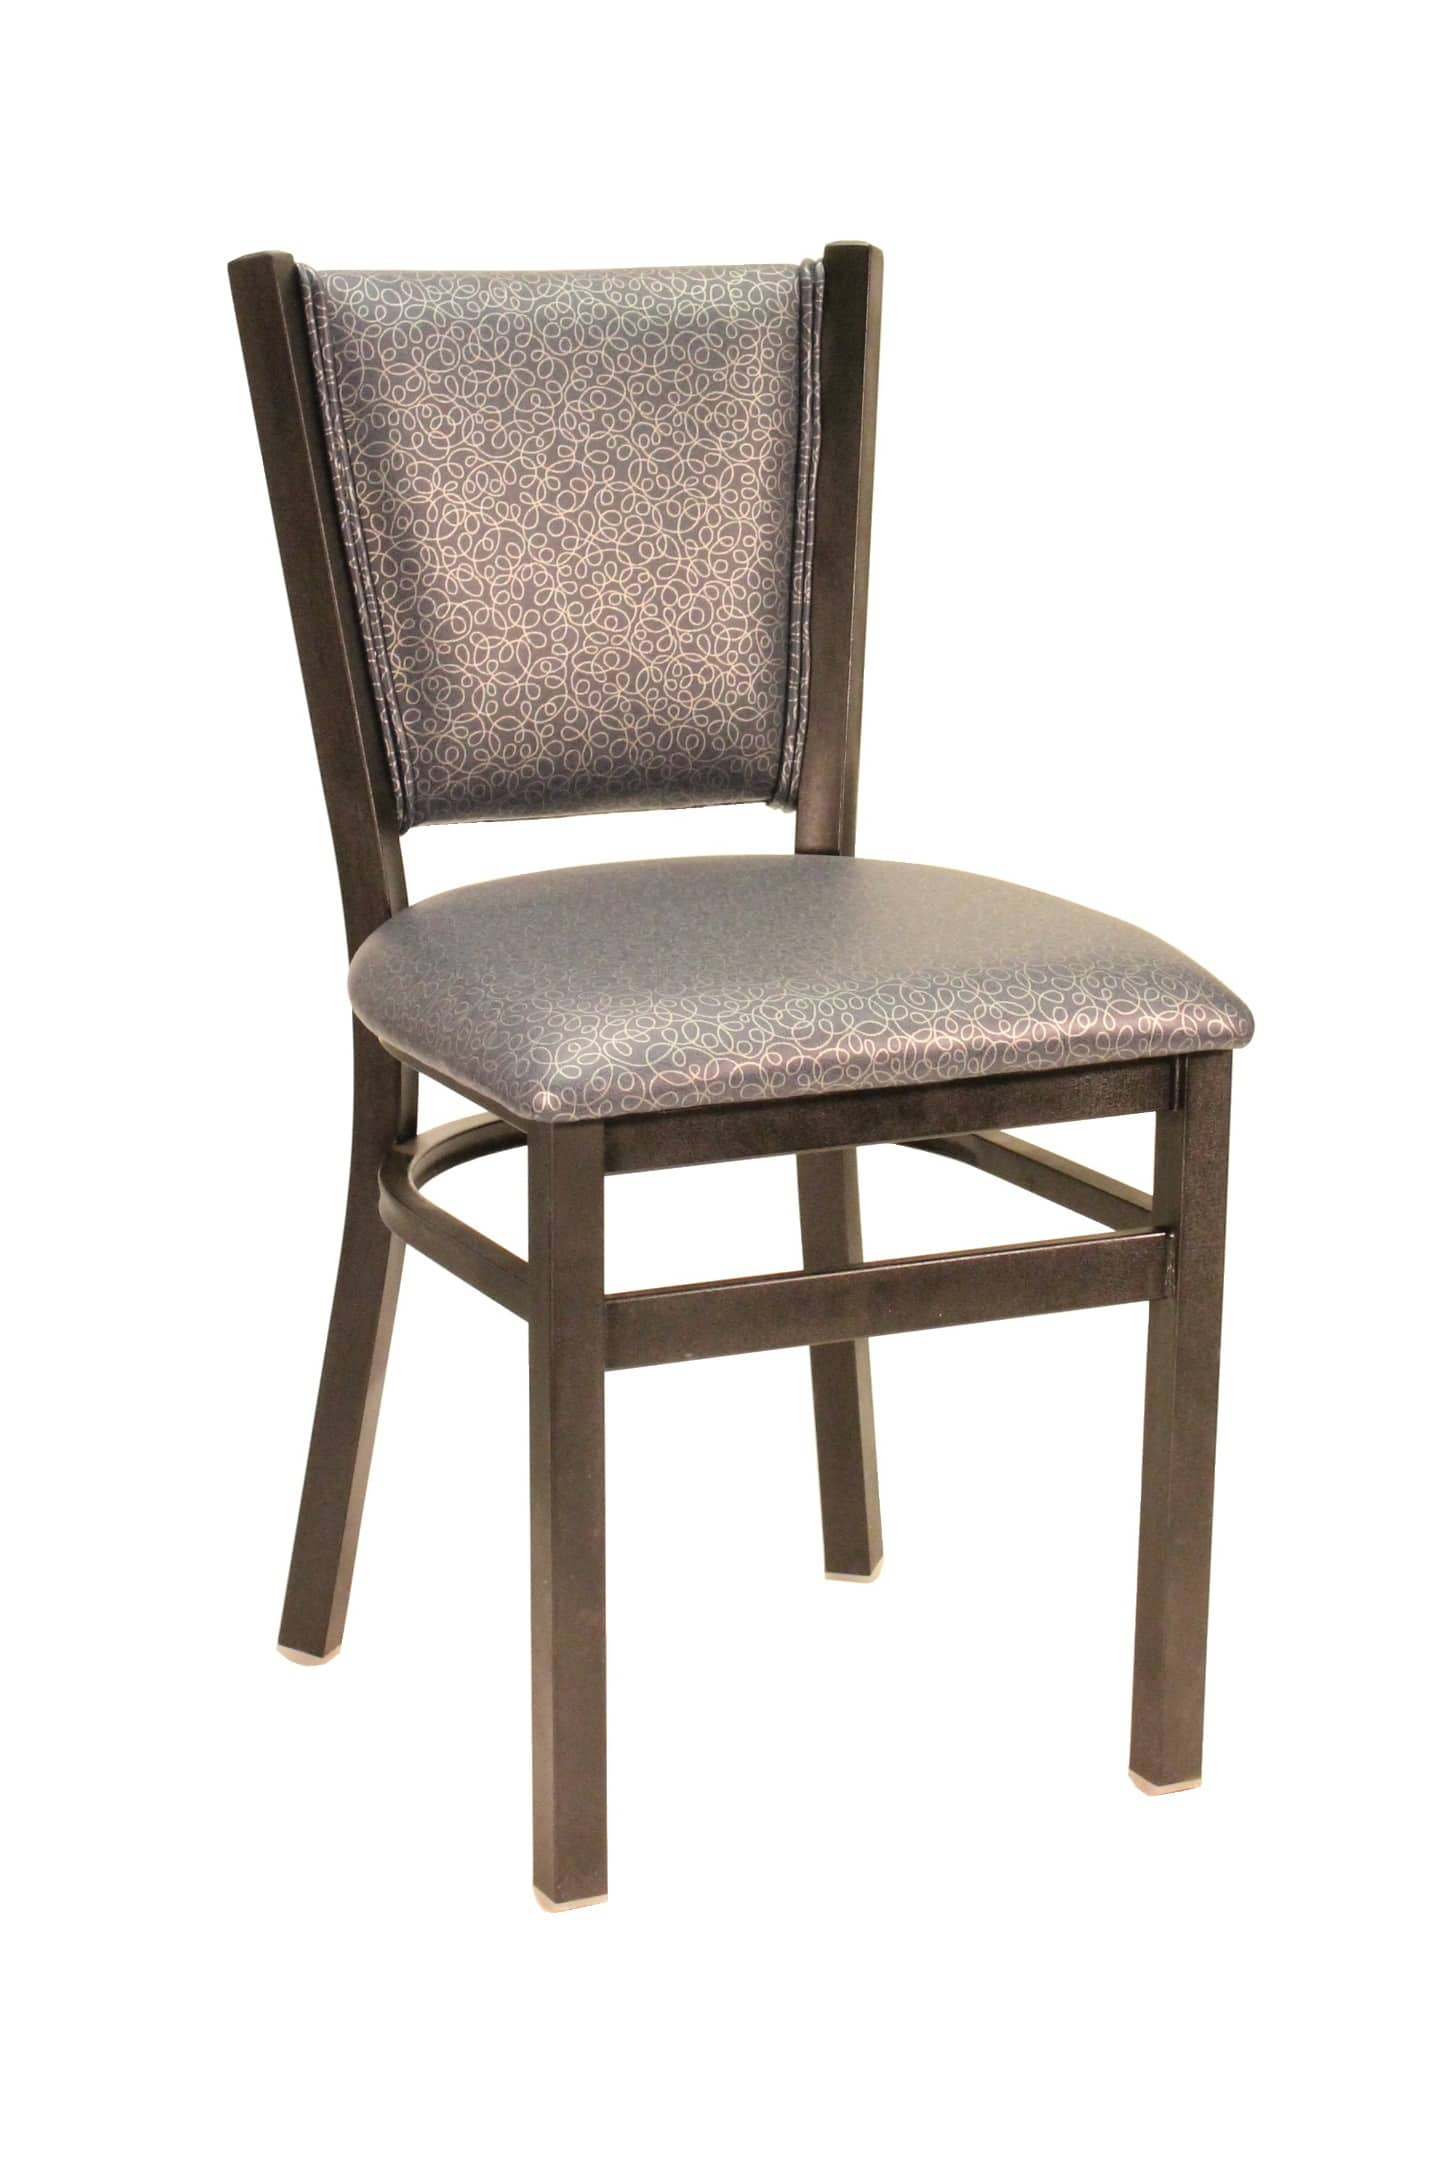 Metal Chairs Heavy Duty Padded Back Chair Model 748